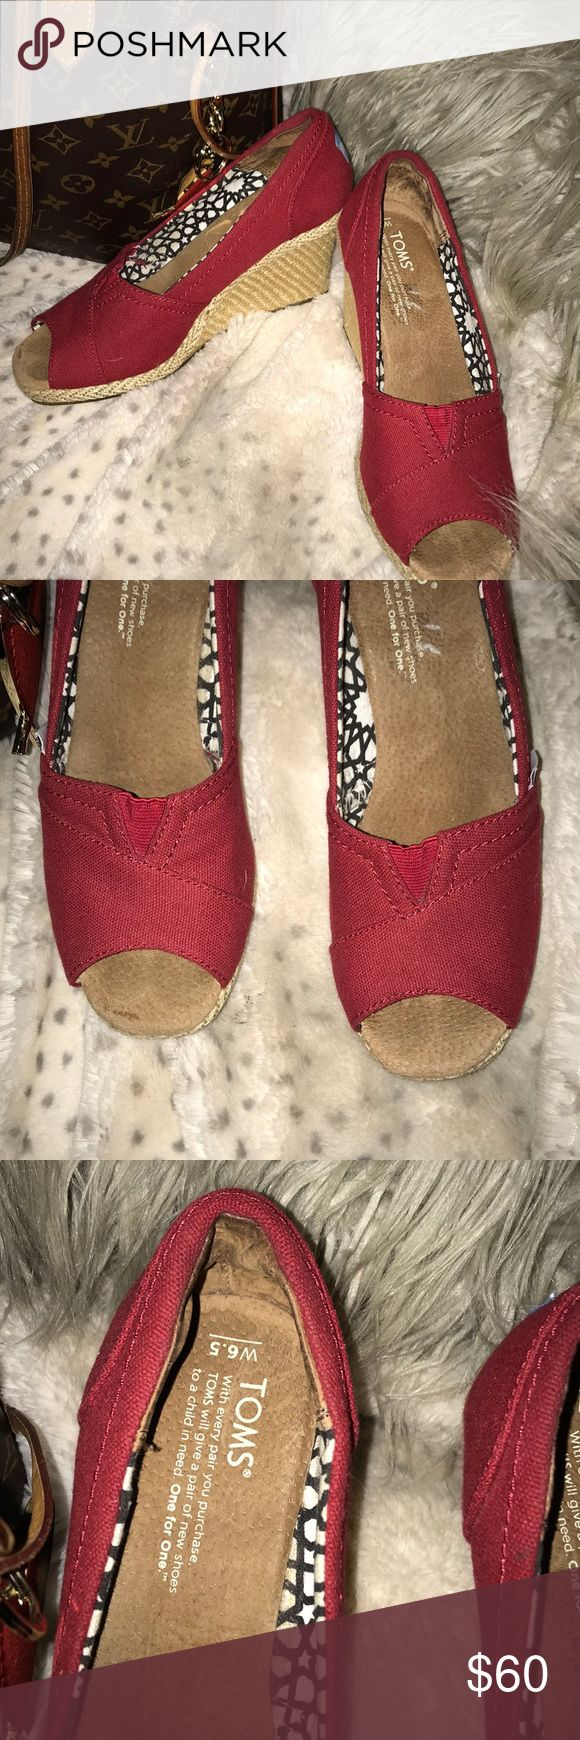 """Amazing Toms Espadrille Wedges Red 6.5 3"""" heal ❤️ These Toms wedge Espadrille shoes are red and sassy! They are 6.5 and have a 3"""" heal. Would go great with Ankle skinny jeans or a pencil skirt and funky V neck tee! Serious offers will be entertained but remember that Posh takes 20% and I need every penny as Hurricane Harvey took my job of 8 years so I'm currently looking for a new job. Selling is my only income! Thank you for your support and happy Poshing! Toms Shoes Espadrilles"""